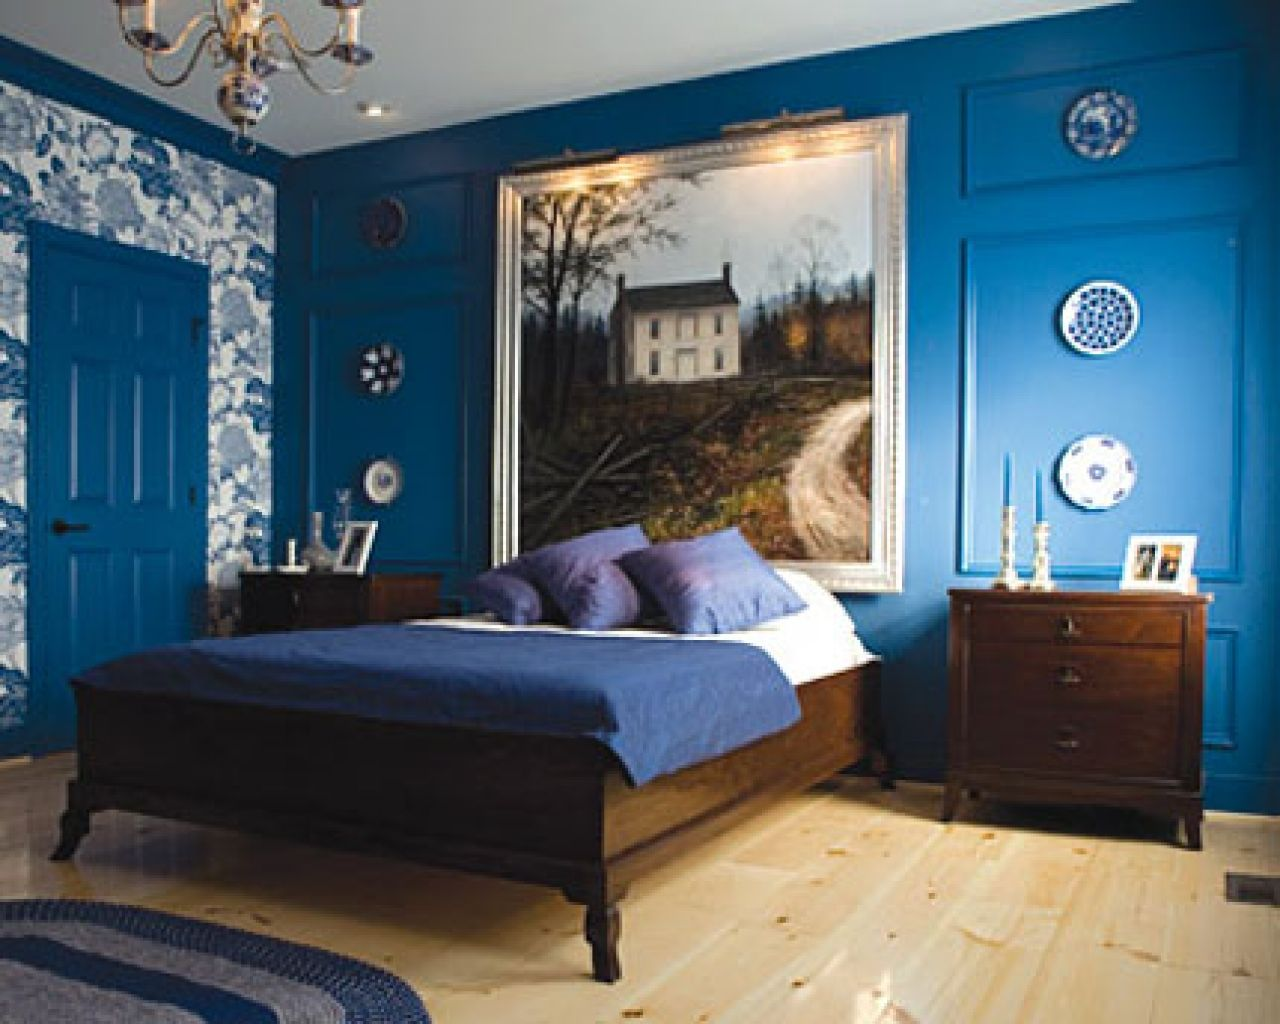 Creative Wall Painting Ideas For Bedroom | Blue bedroom ...